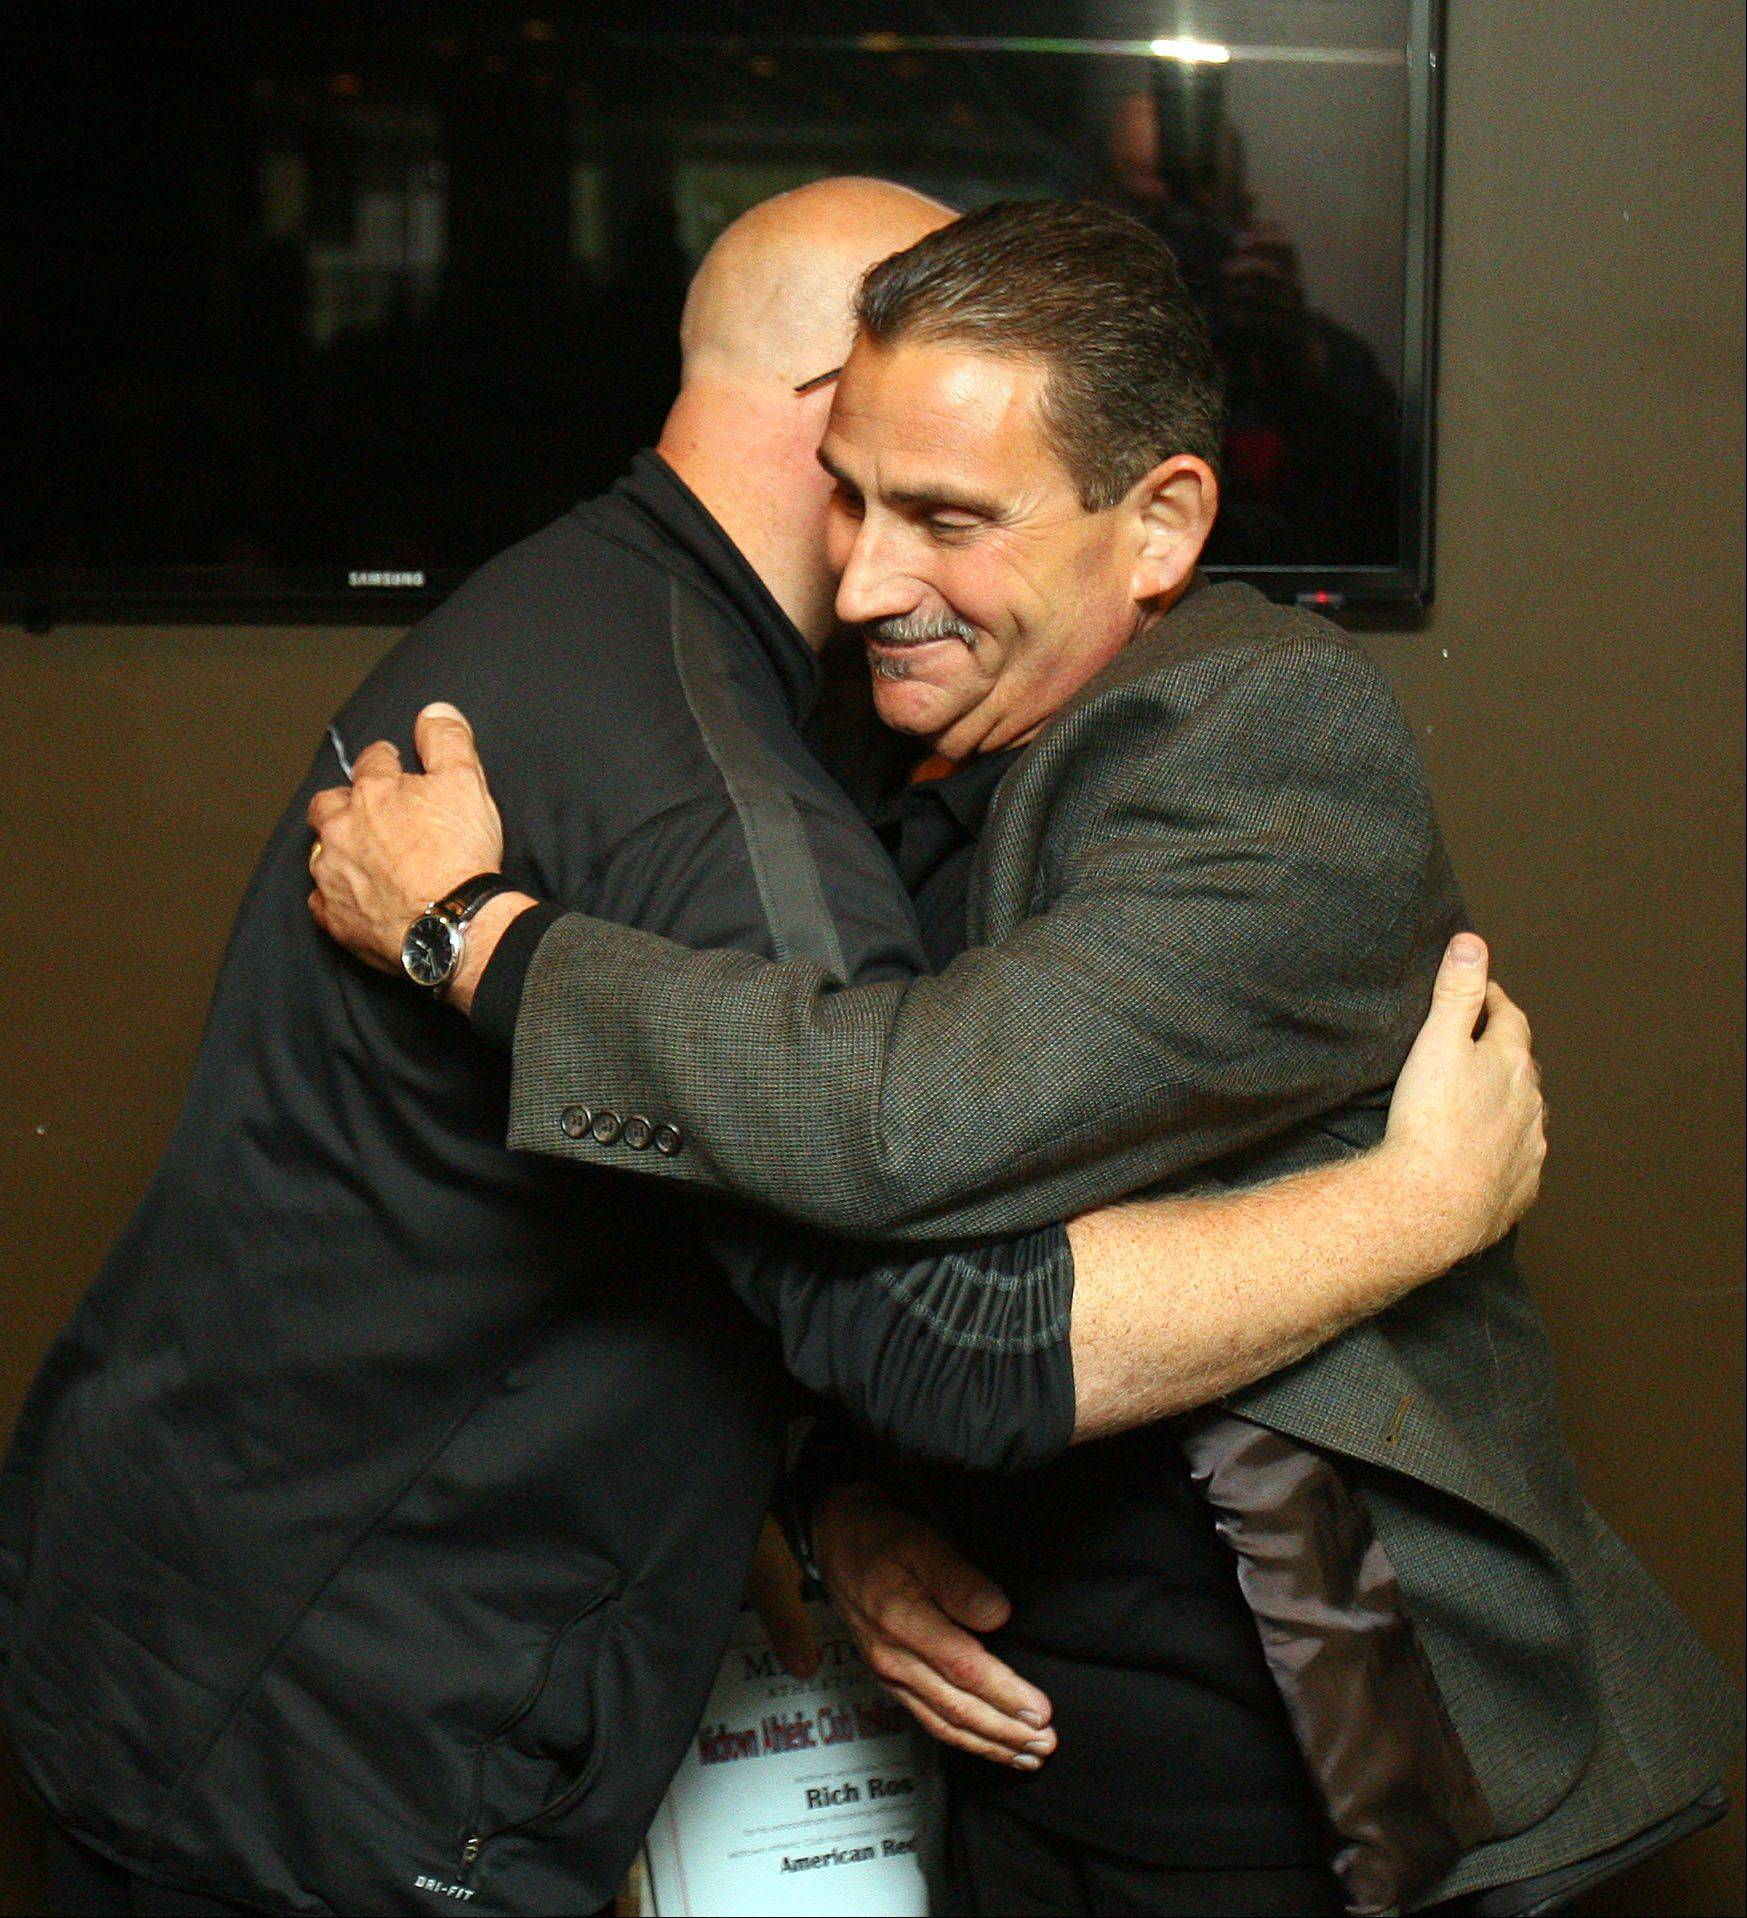 Gary Greenberg of Highland Park hugs Midtown Athletic Club personal trainer Rich Rossi during a ceremony at the facility in Bannockburn Thursday. Rossi was honored for saving Greenberg after he suffered a heart attack. Rossi used a AED (Automated External Defibrillator) to save his life.